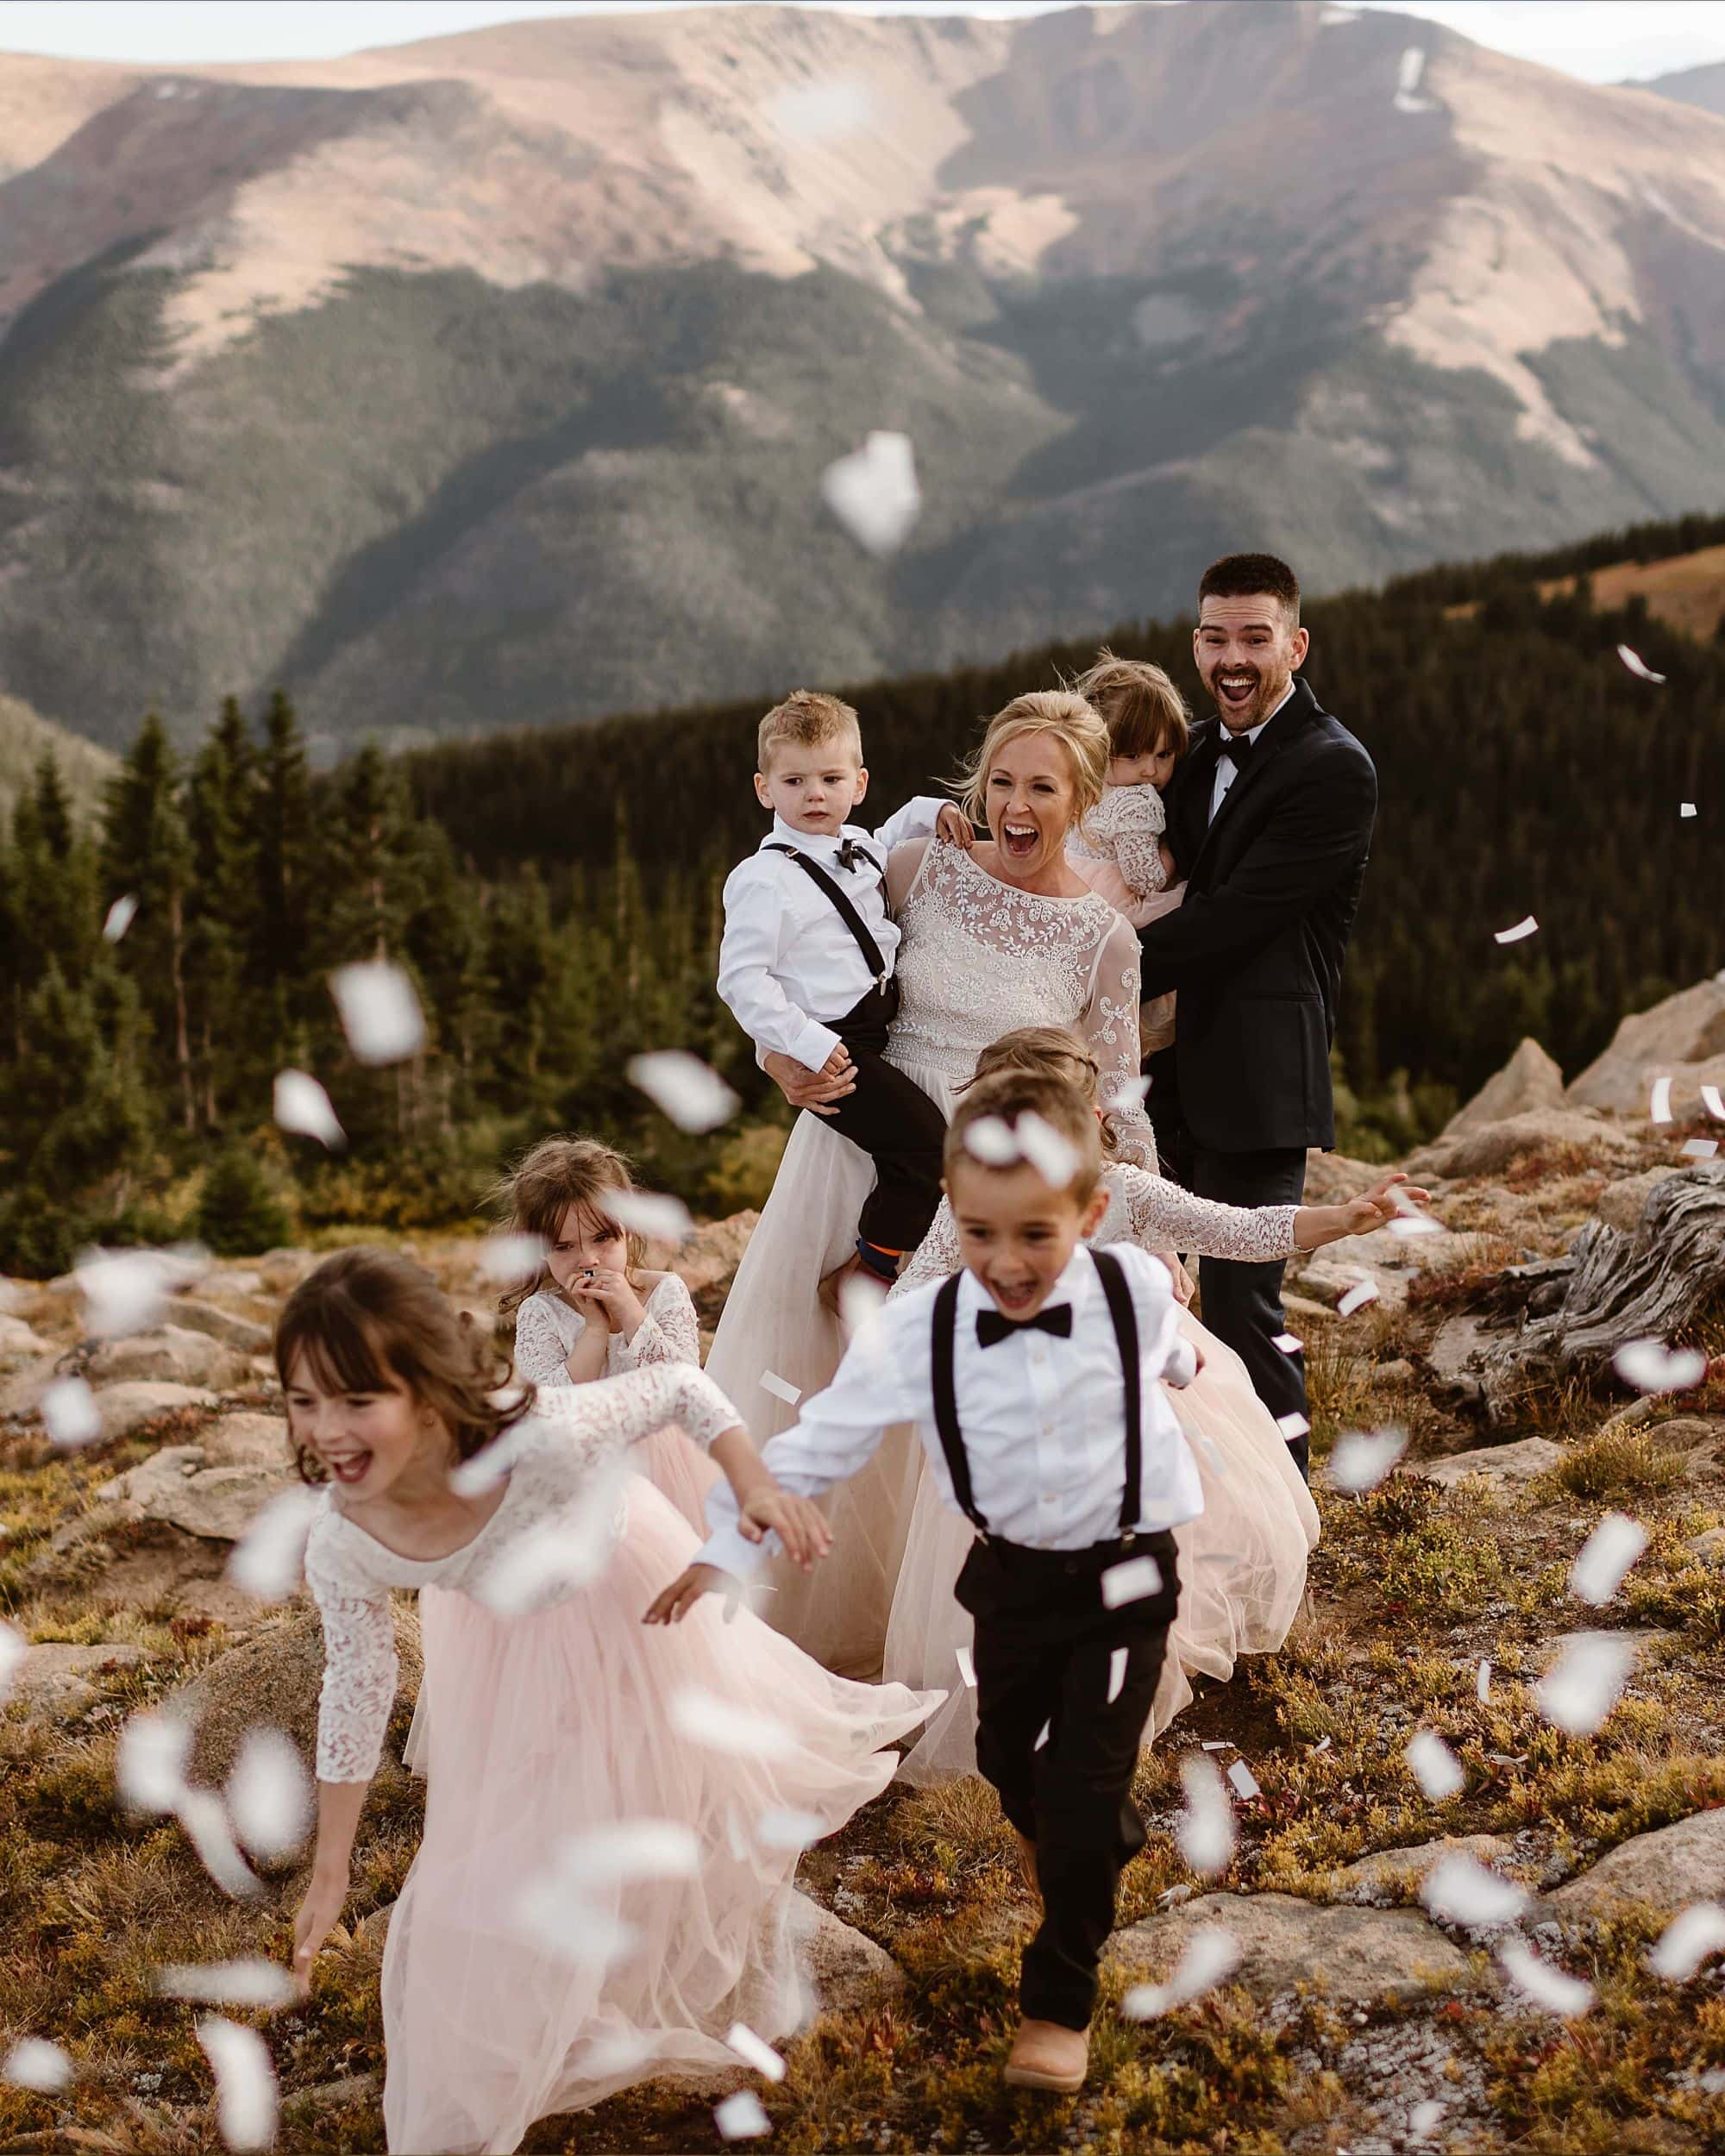 A bride and groom smile at their children as they run toward confetti popping in the sky.